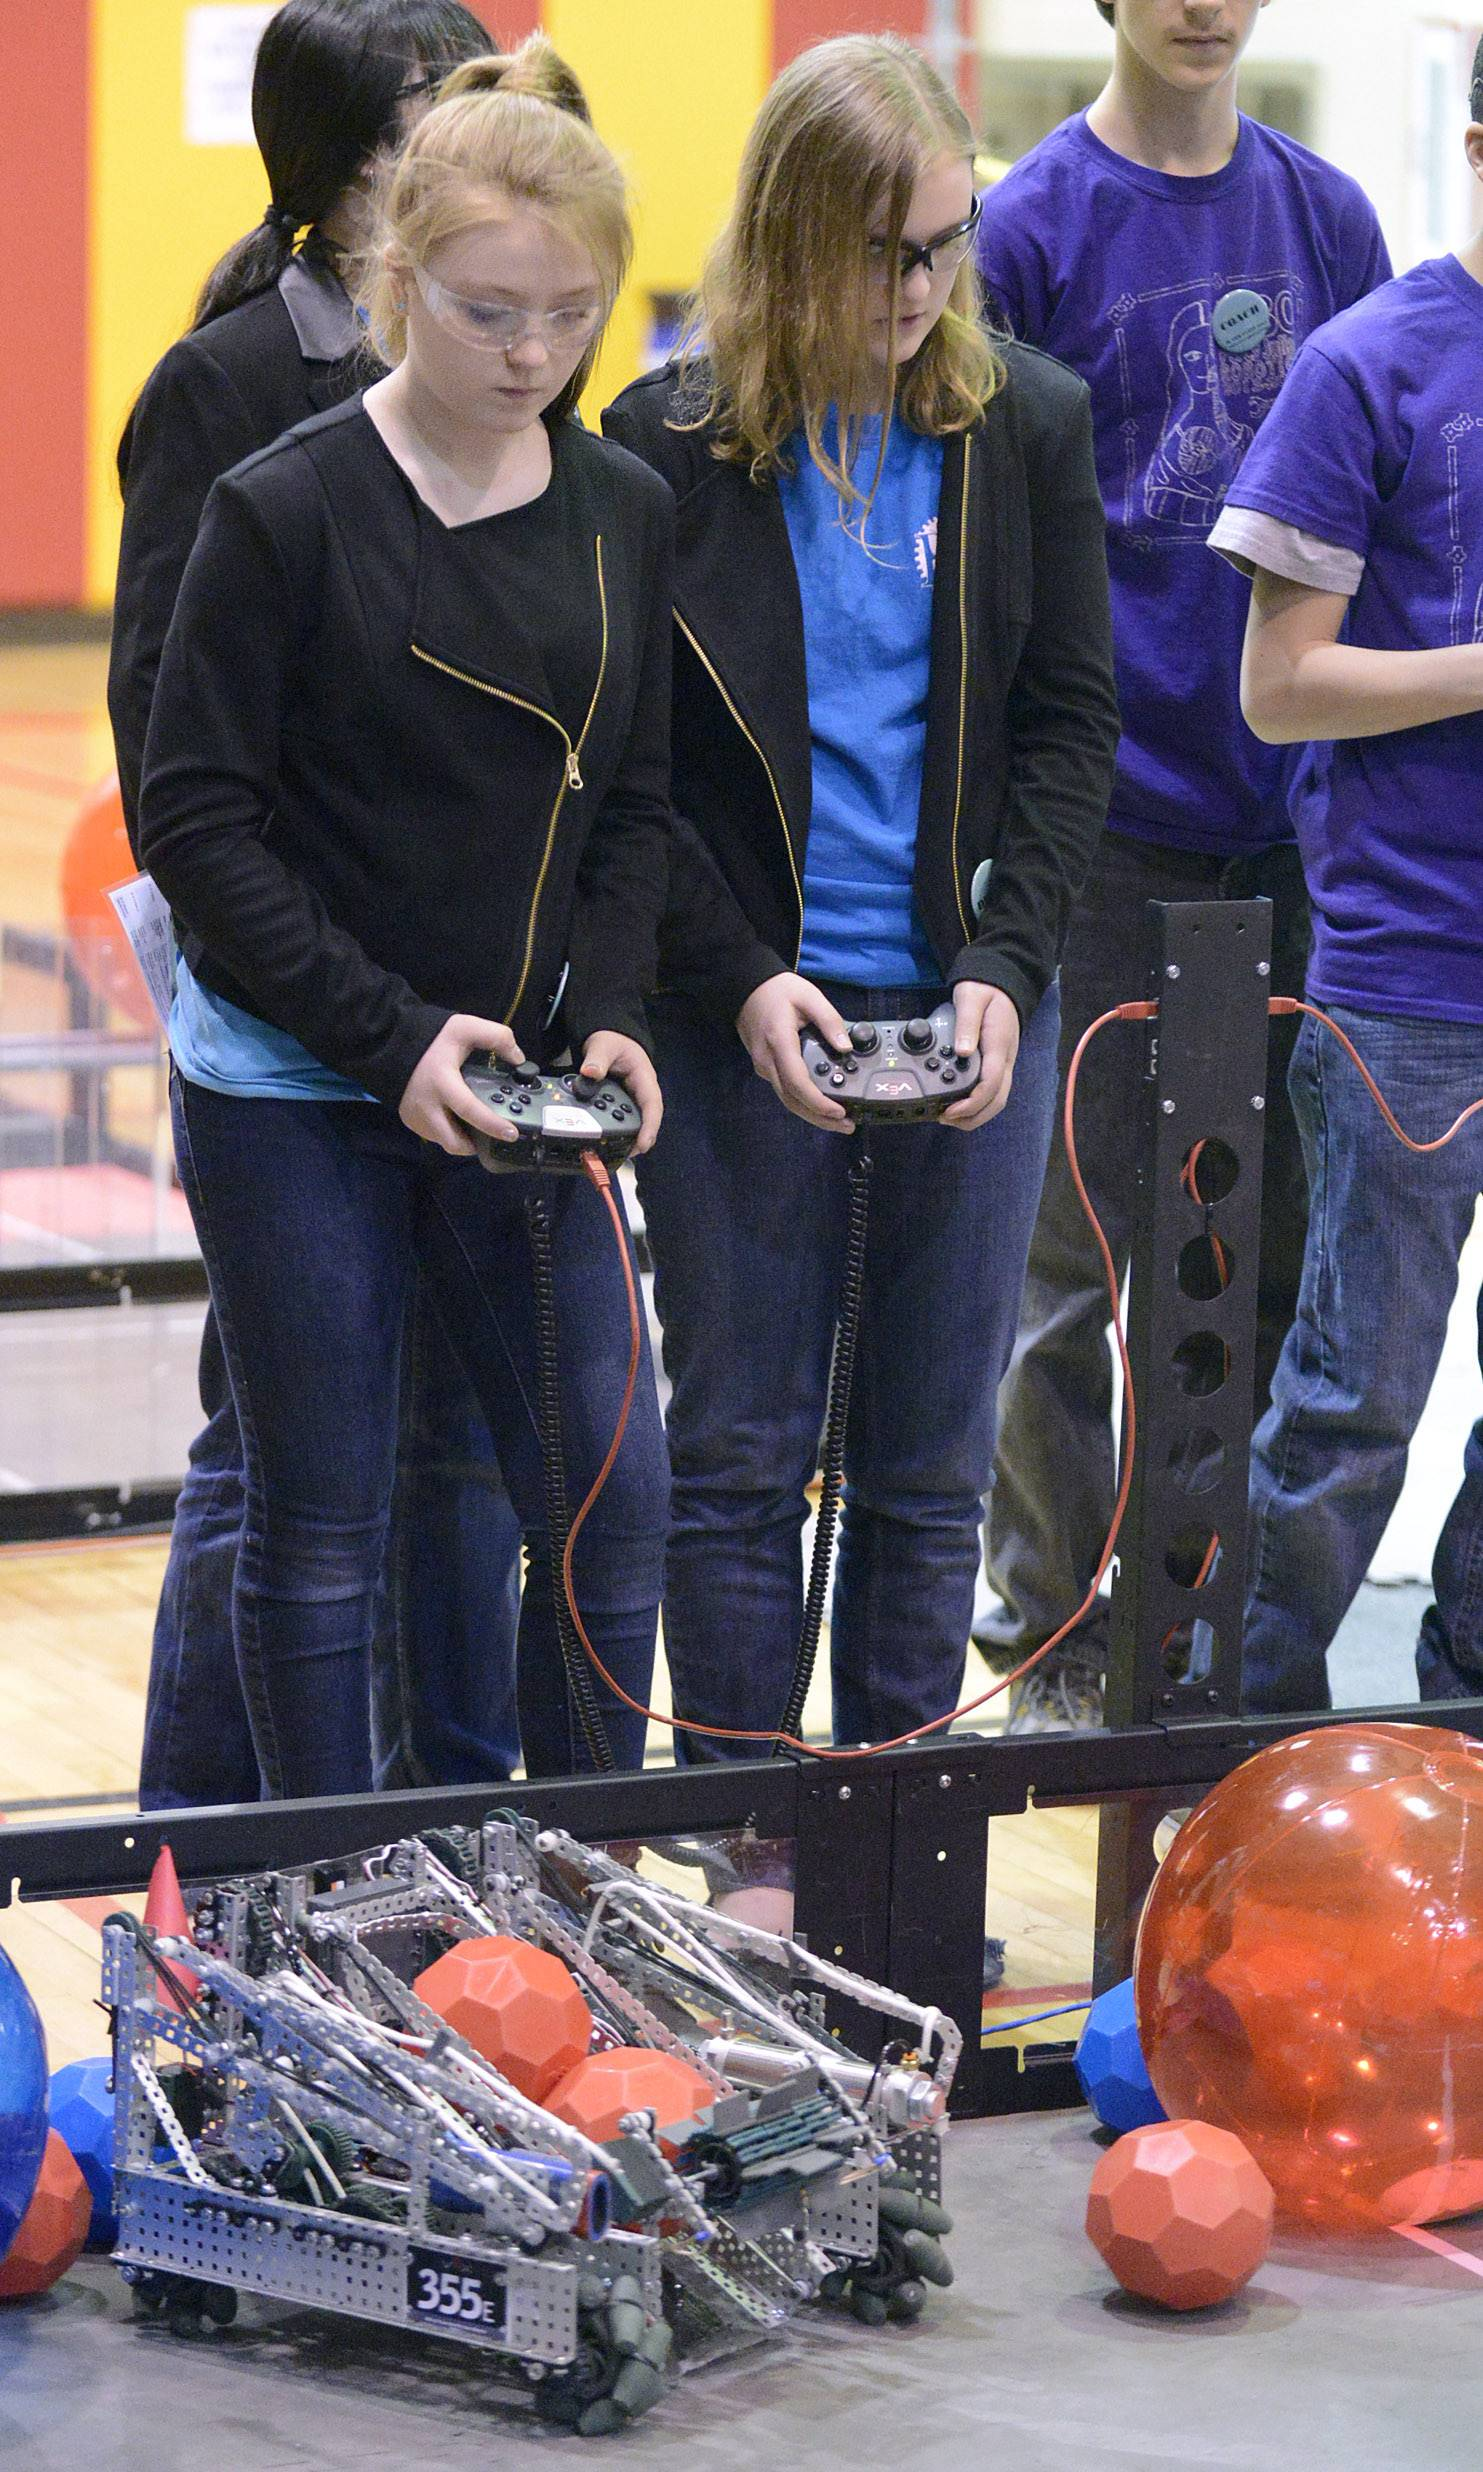 Gabby Garbaccio, left, and Katie Miller, both 14 and from Batavia, work together as their robot from team Cobalt competes in a first-round match in the Illinois VEX Robotics state championships Saturday in Batavia. The team was 2012 VEX National Champions as well as the 2012 VEX World Champions.